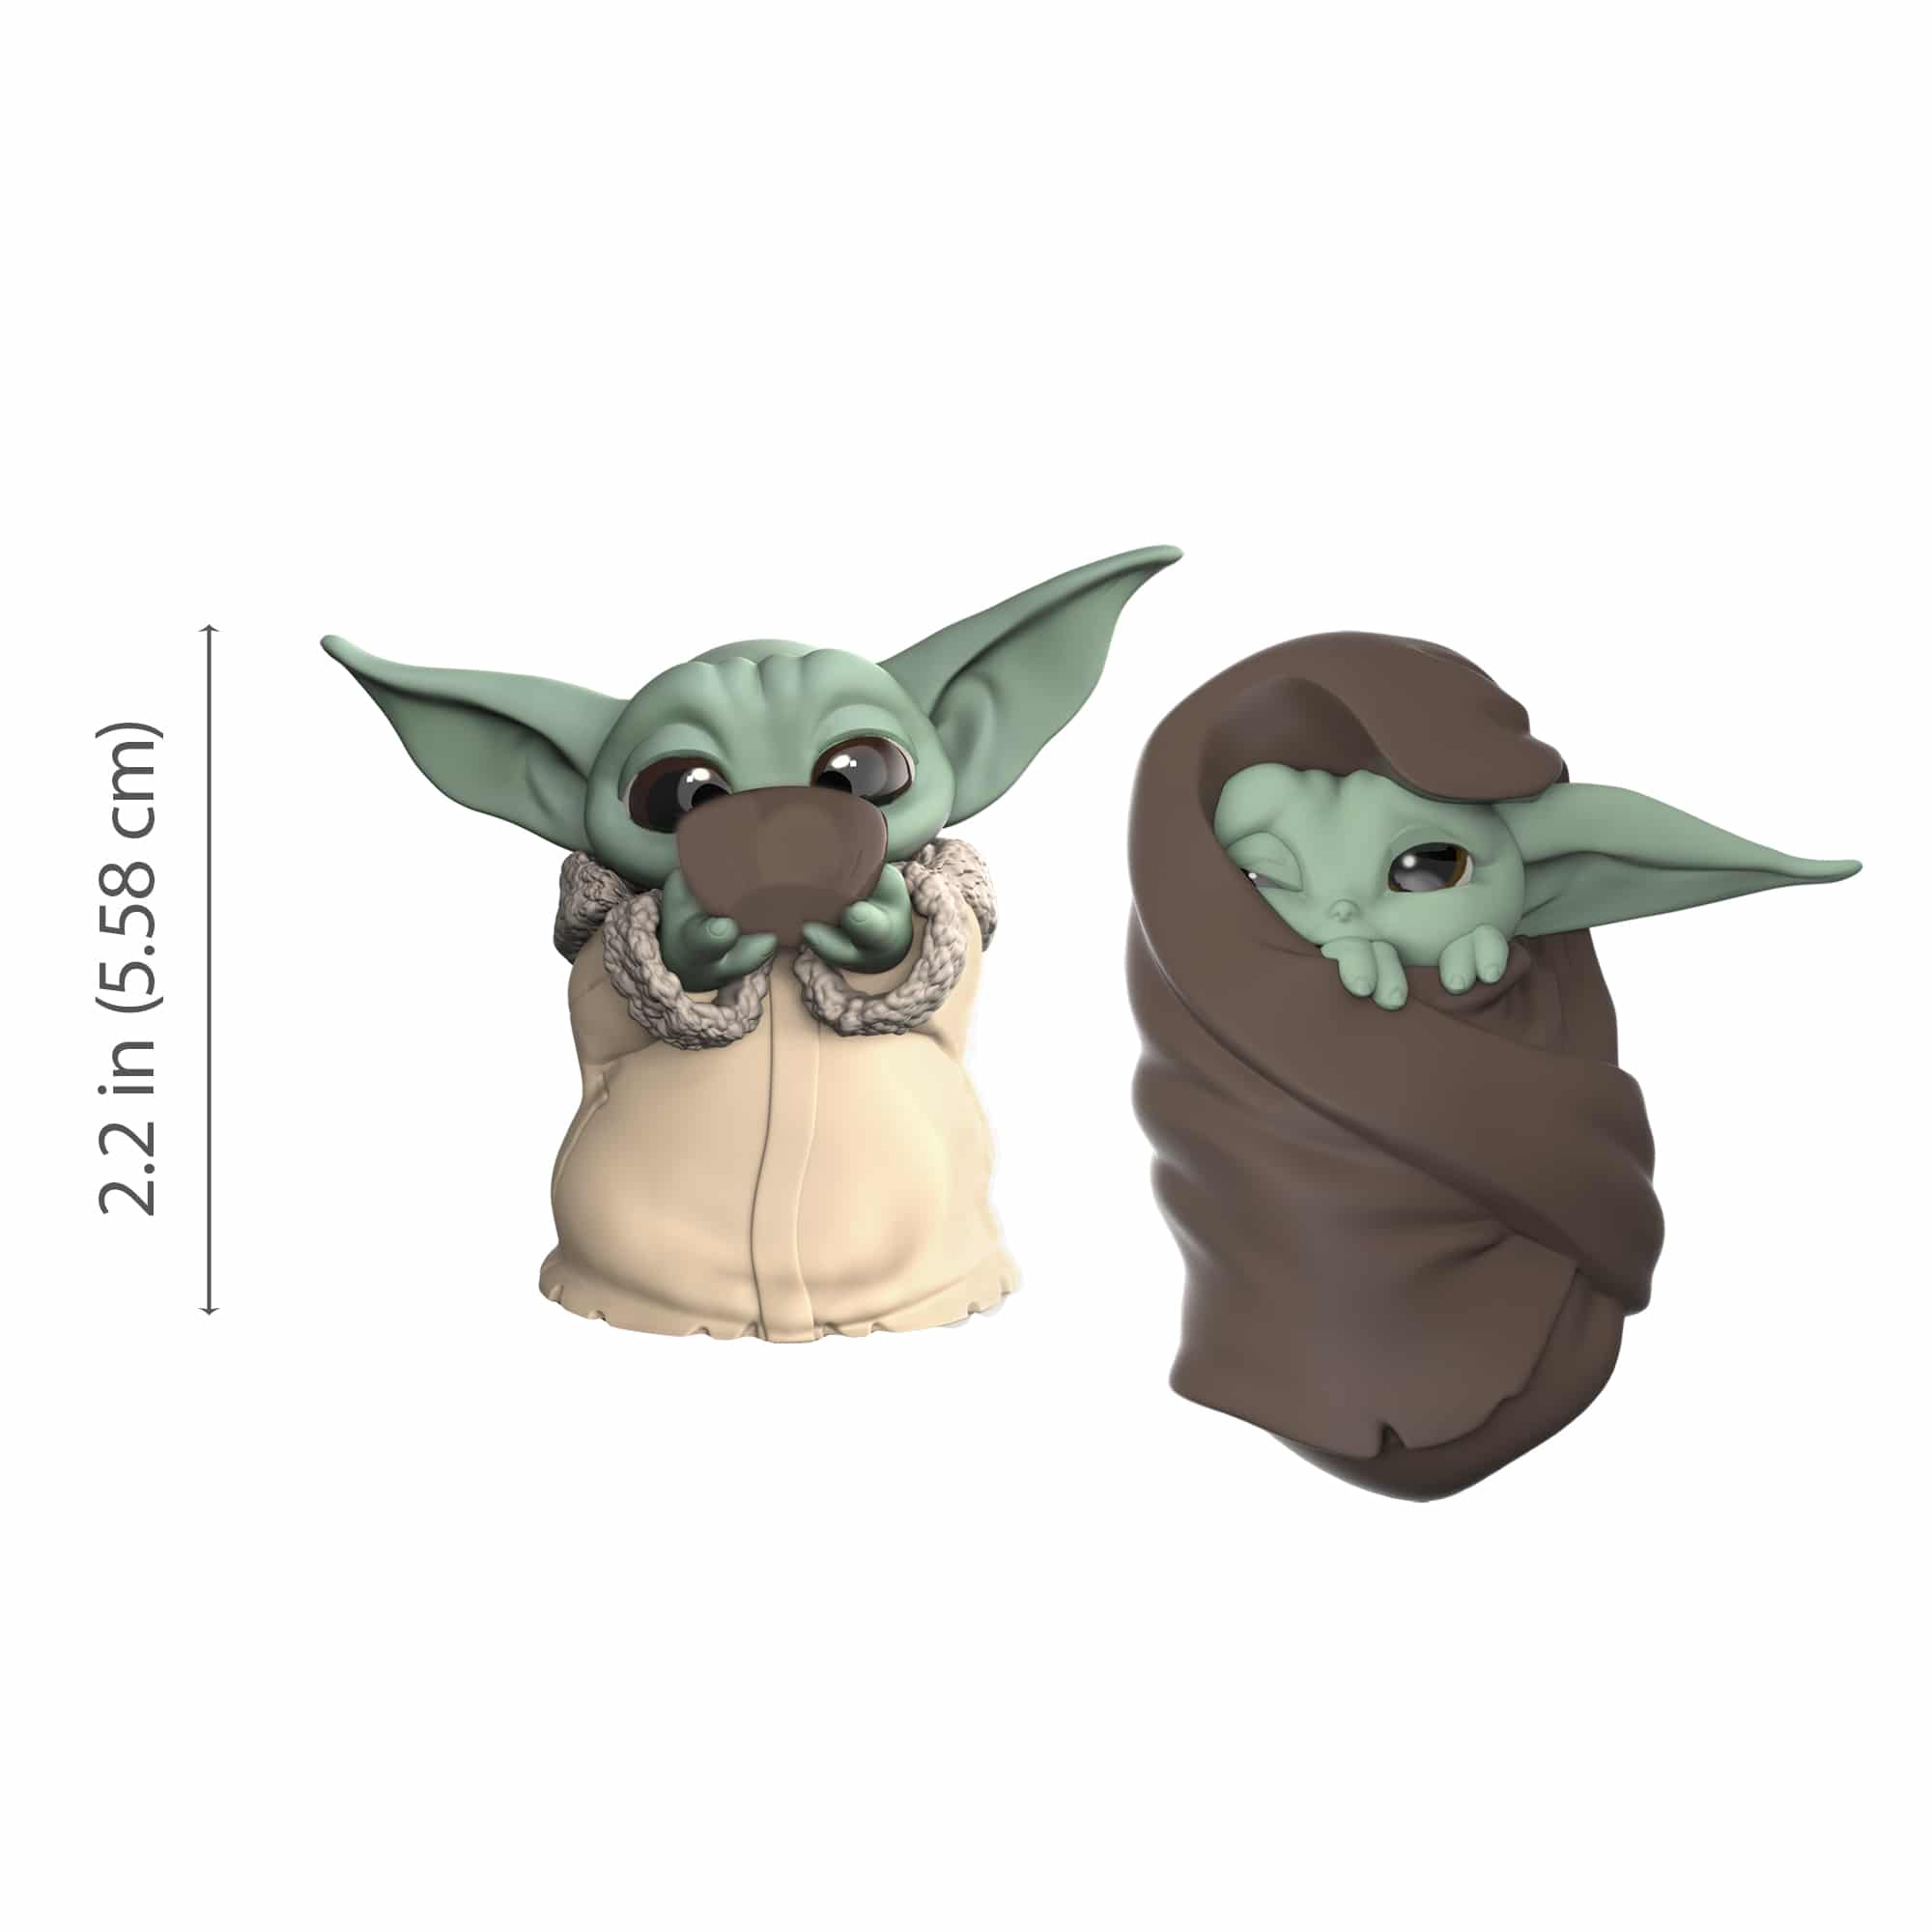 Hasbro's first Baby Yoda toys are here and they're freaking adorable 13